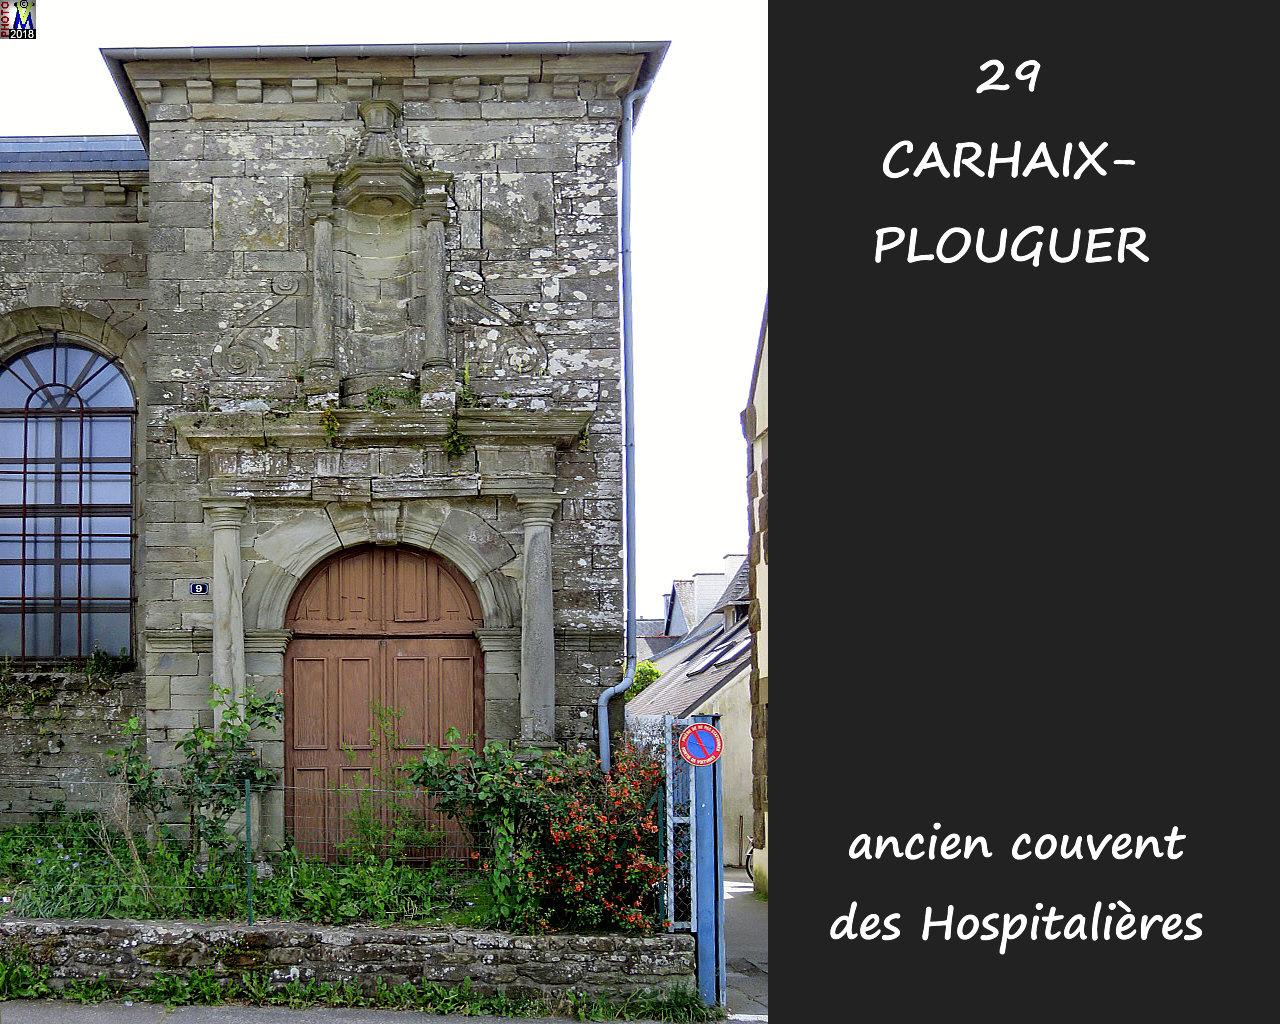 29CARHAIX-PLOUGER_couventH_102.jpg